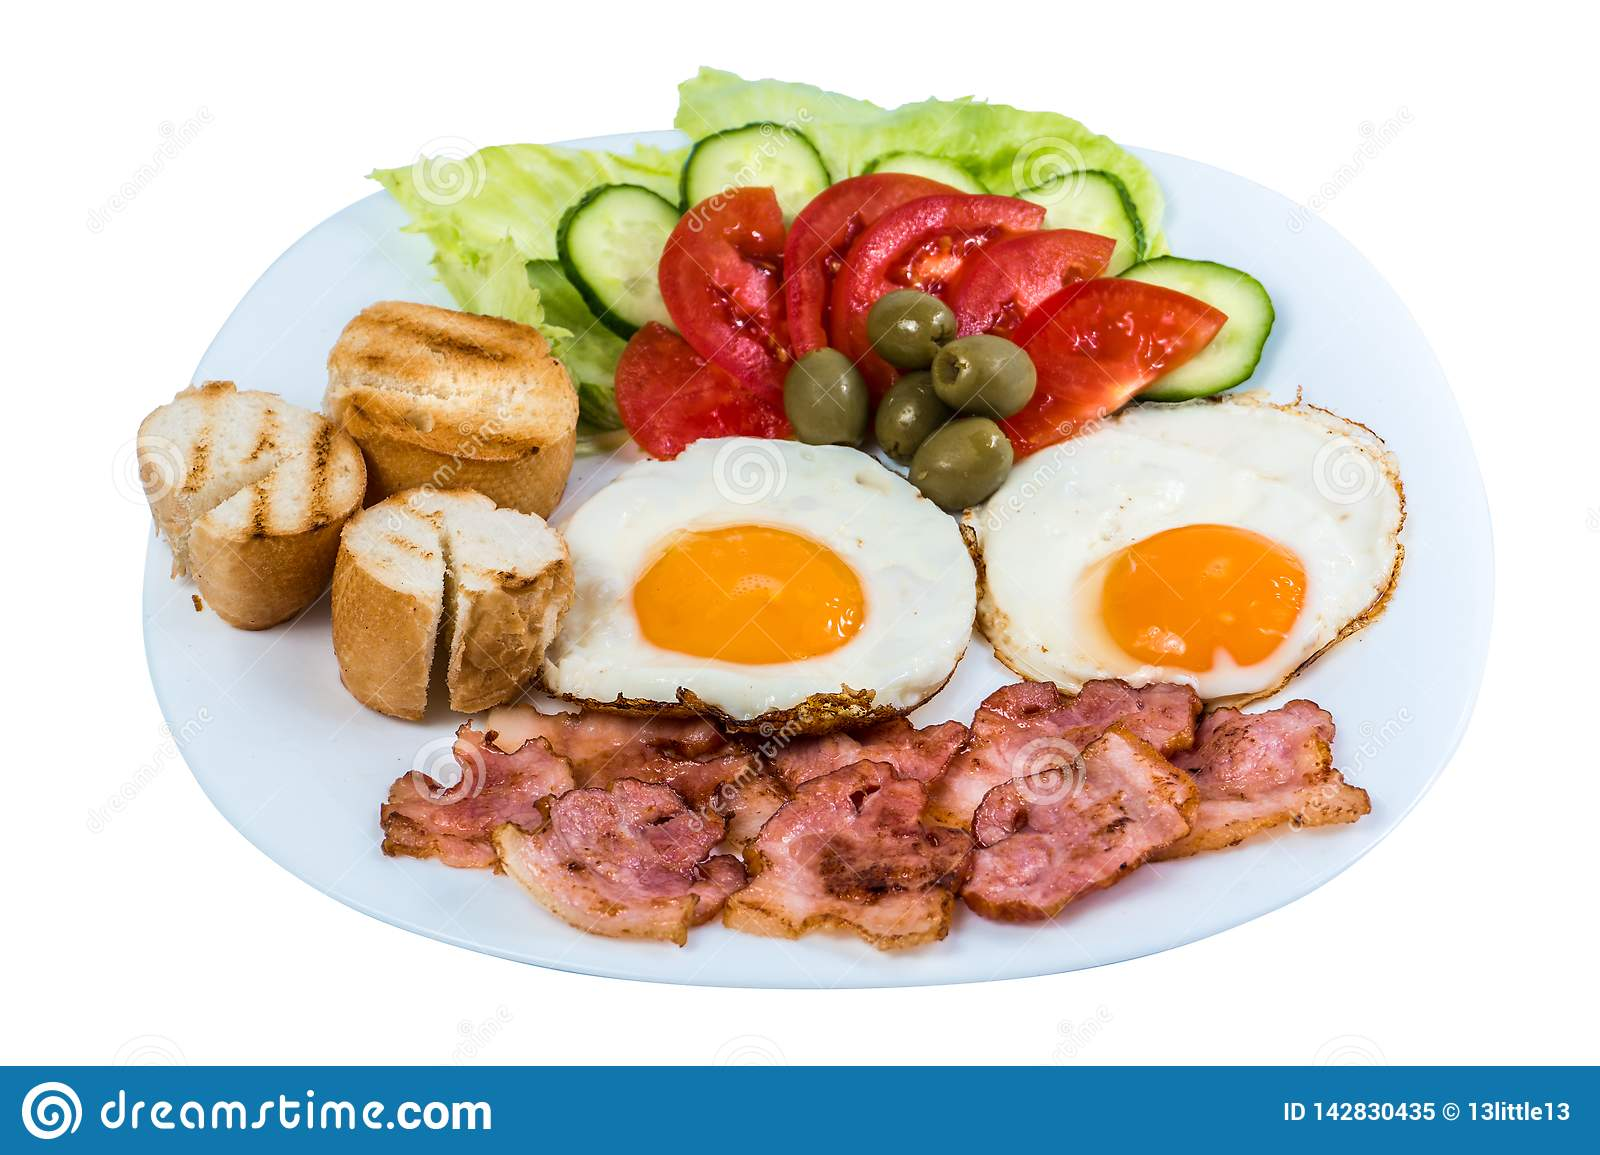 Breakfast fried egg fresh vegetables fried bacon and olives on a white plate